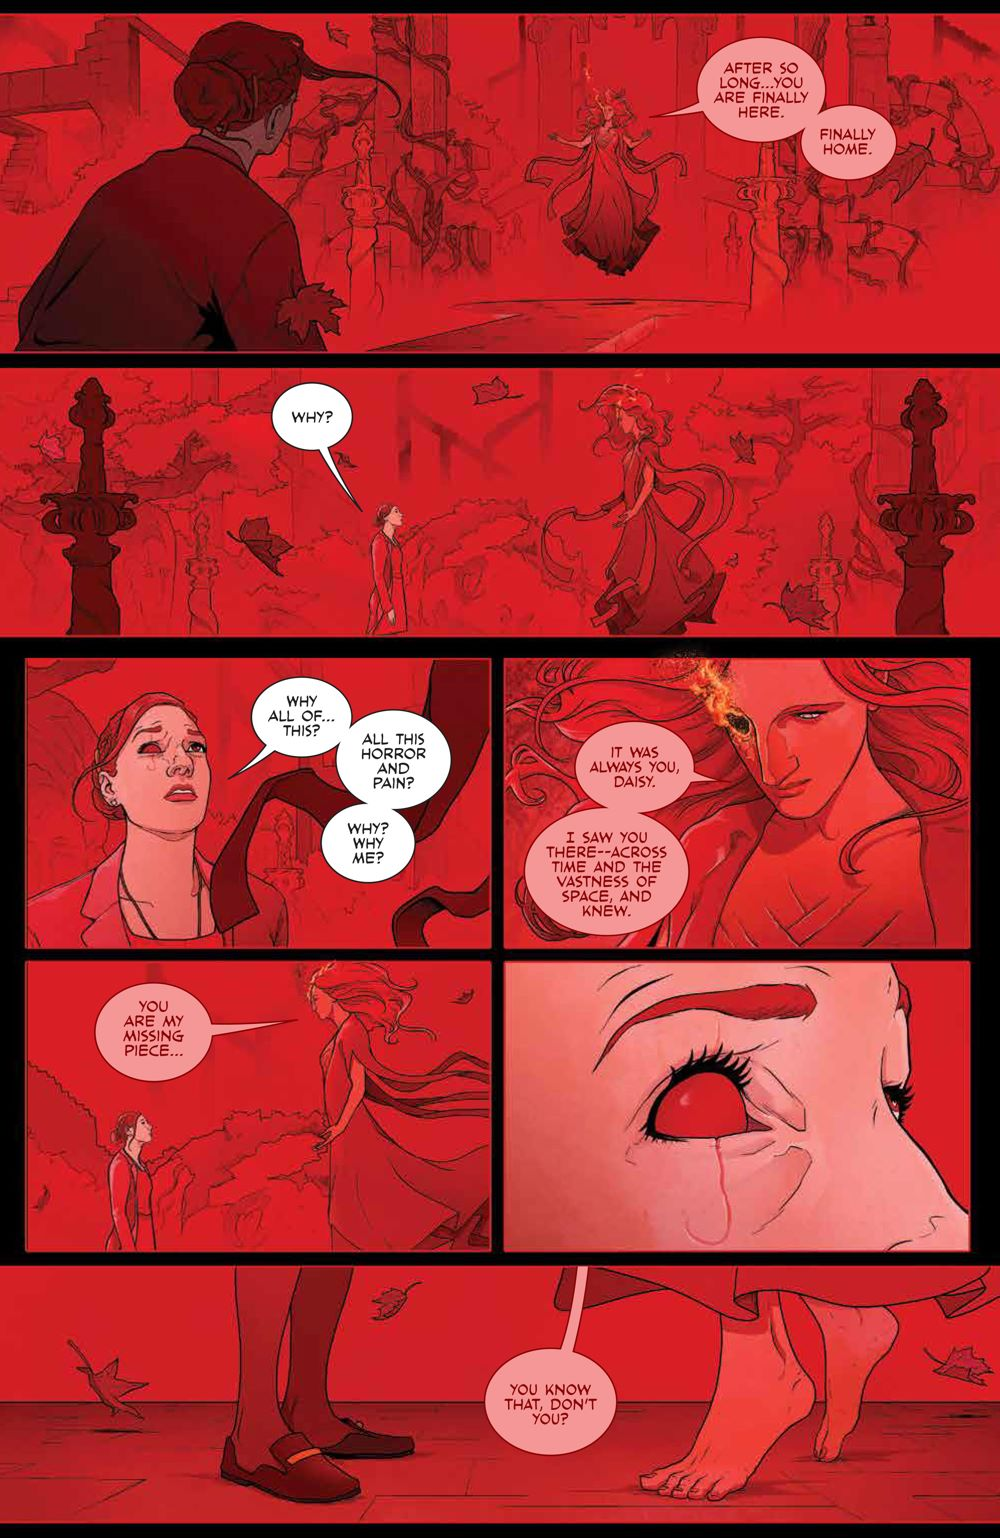 RedMother_012_PRESS_6 ComicList Previews: THE RED MOTHER #12